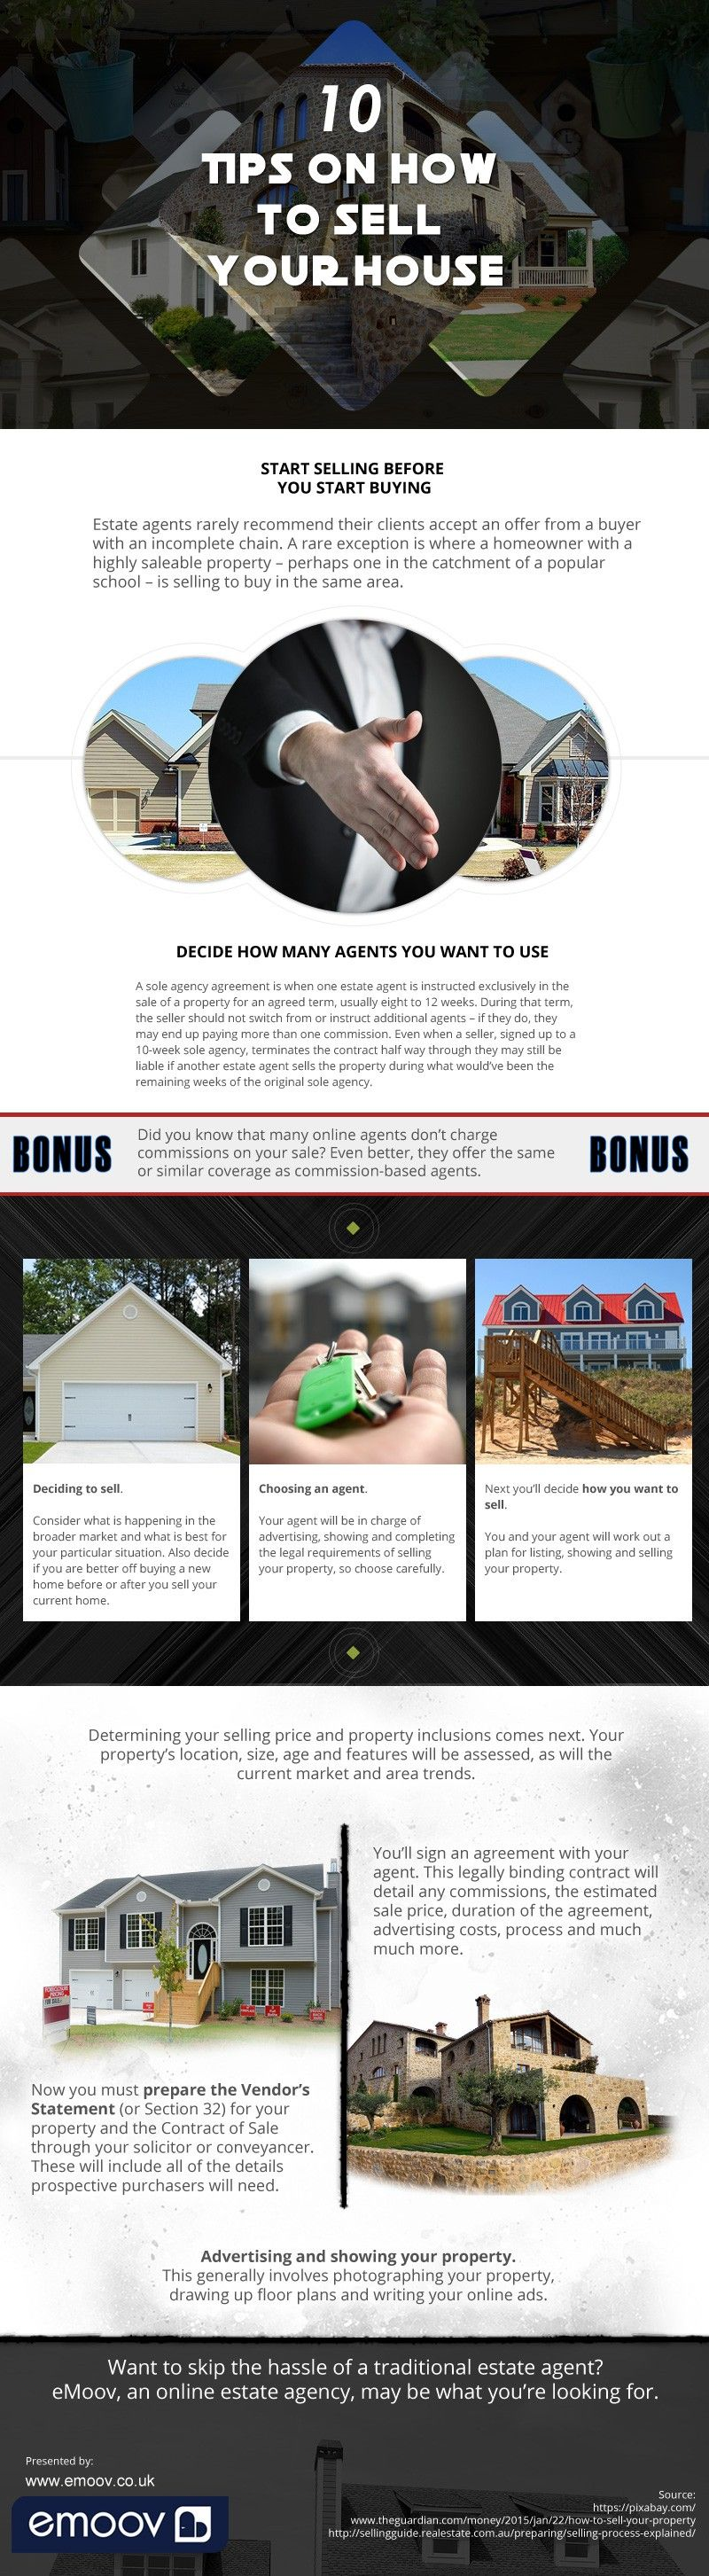 10 Tips on How to Sell Your House [infographic]